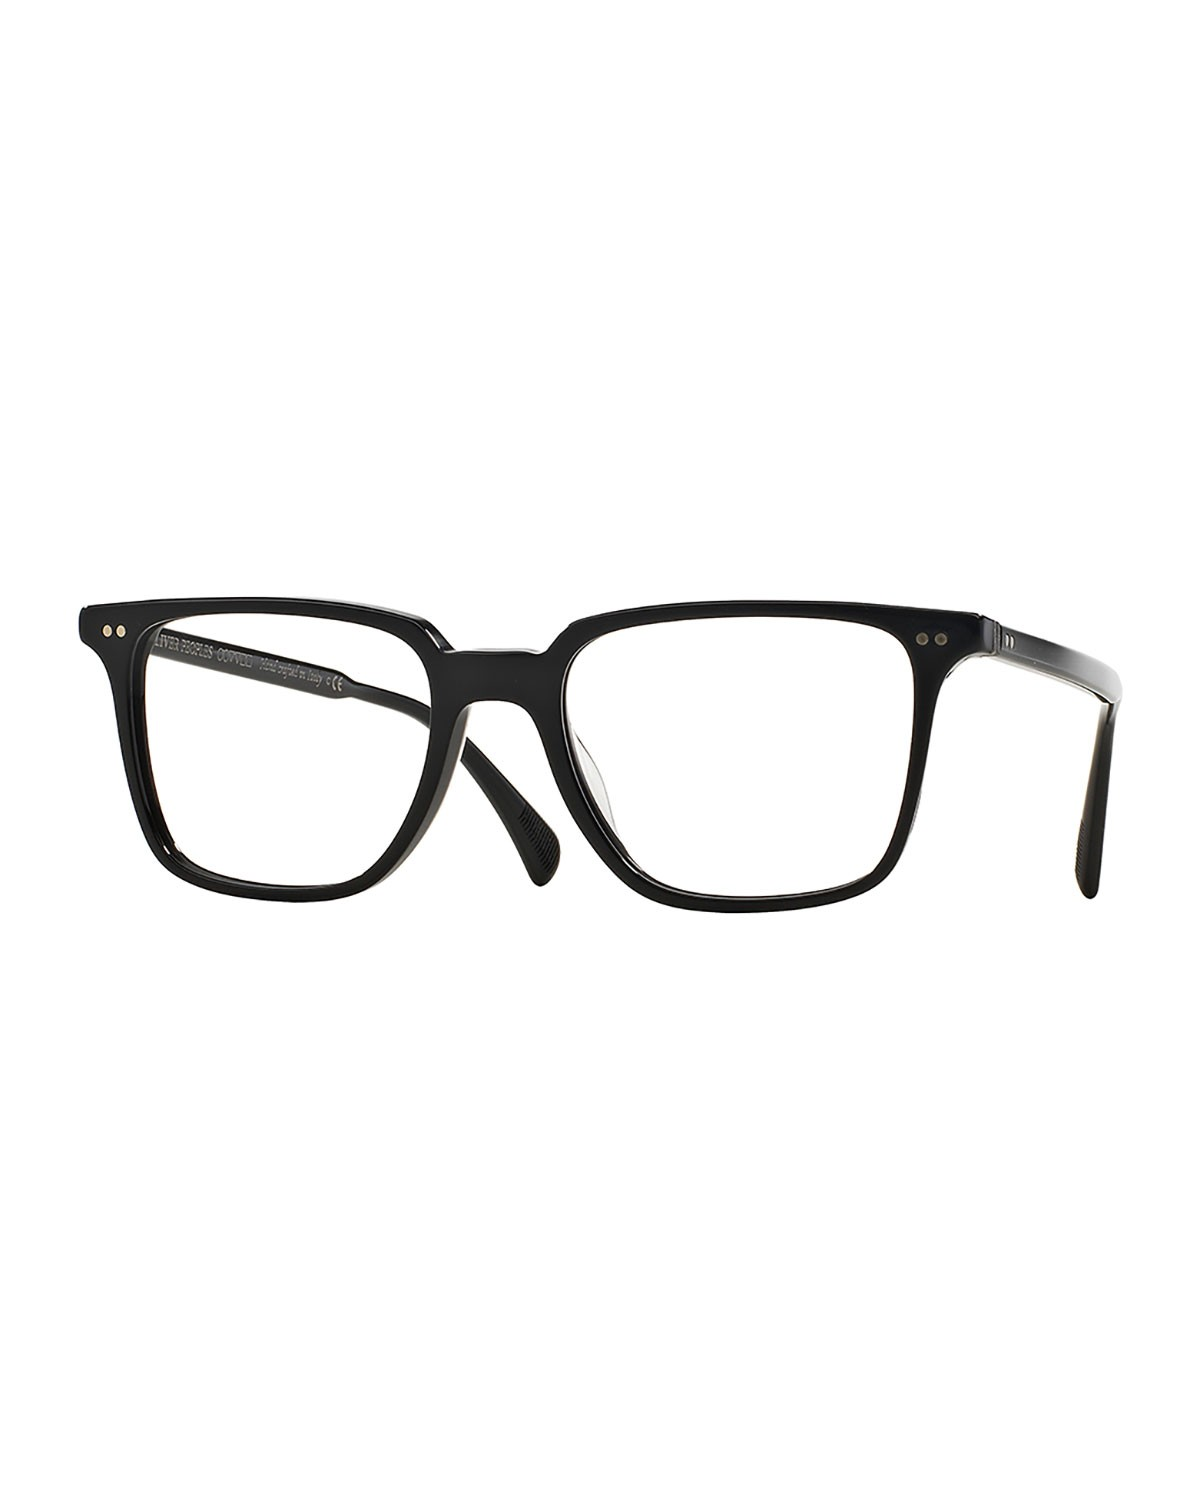 Opll 51 Optical Glasses, Black - Oliver Peoples